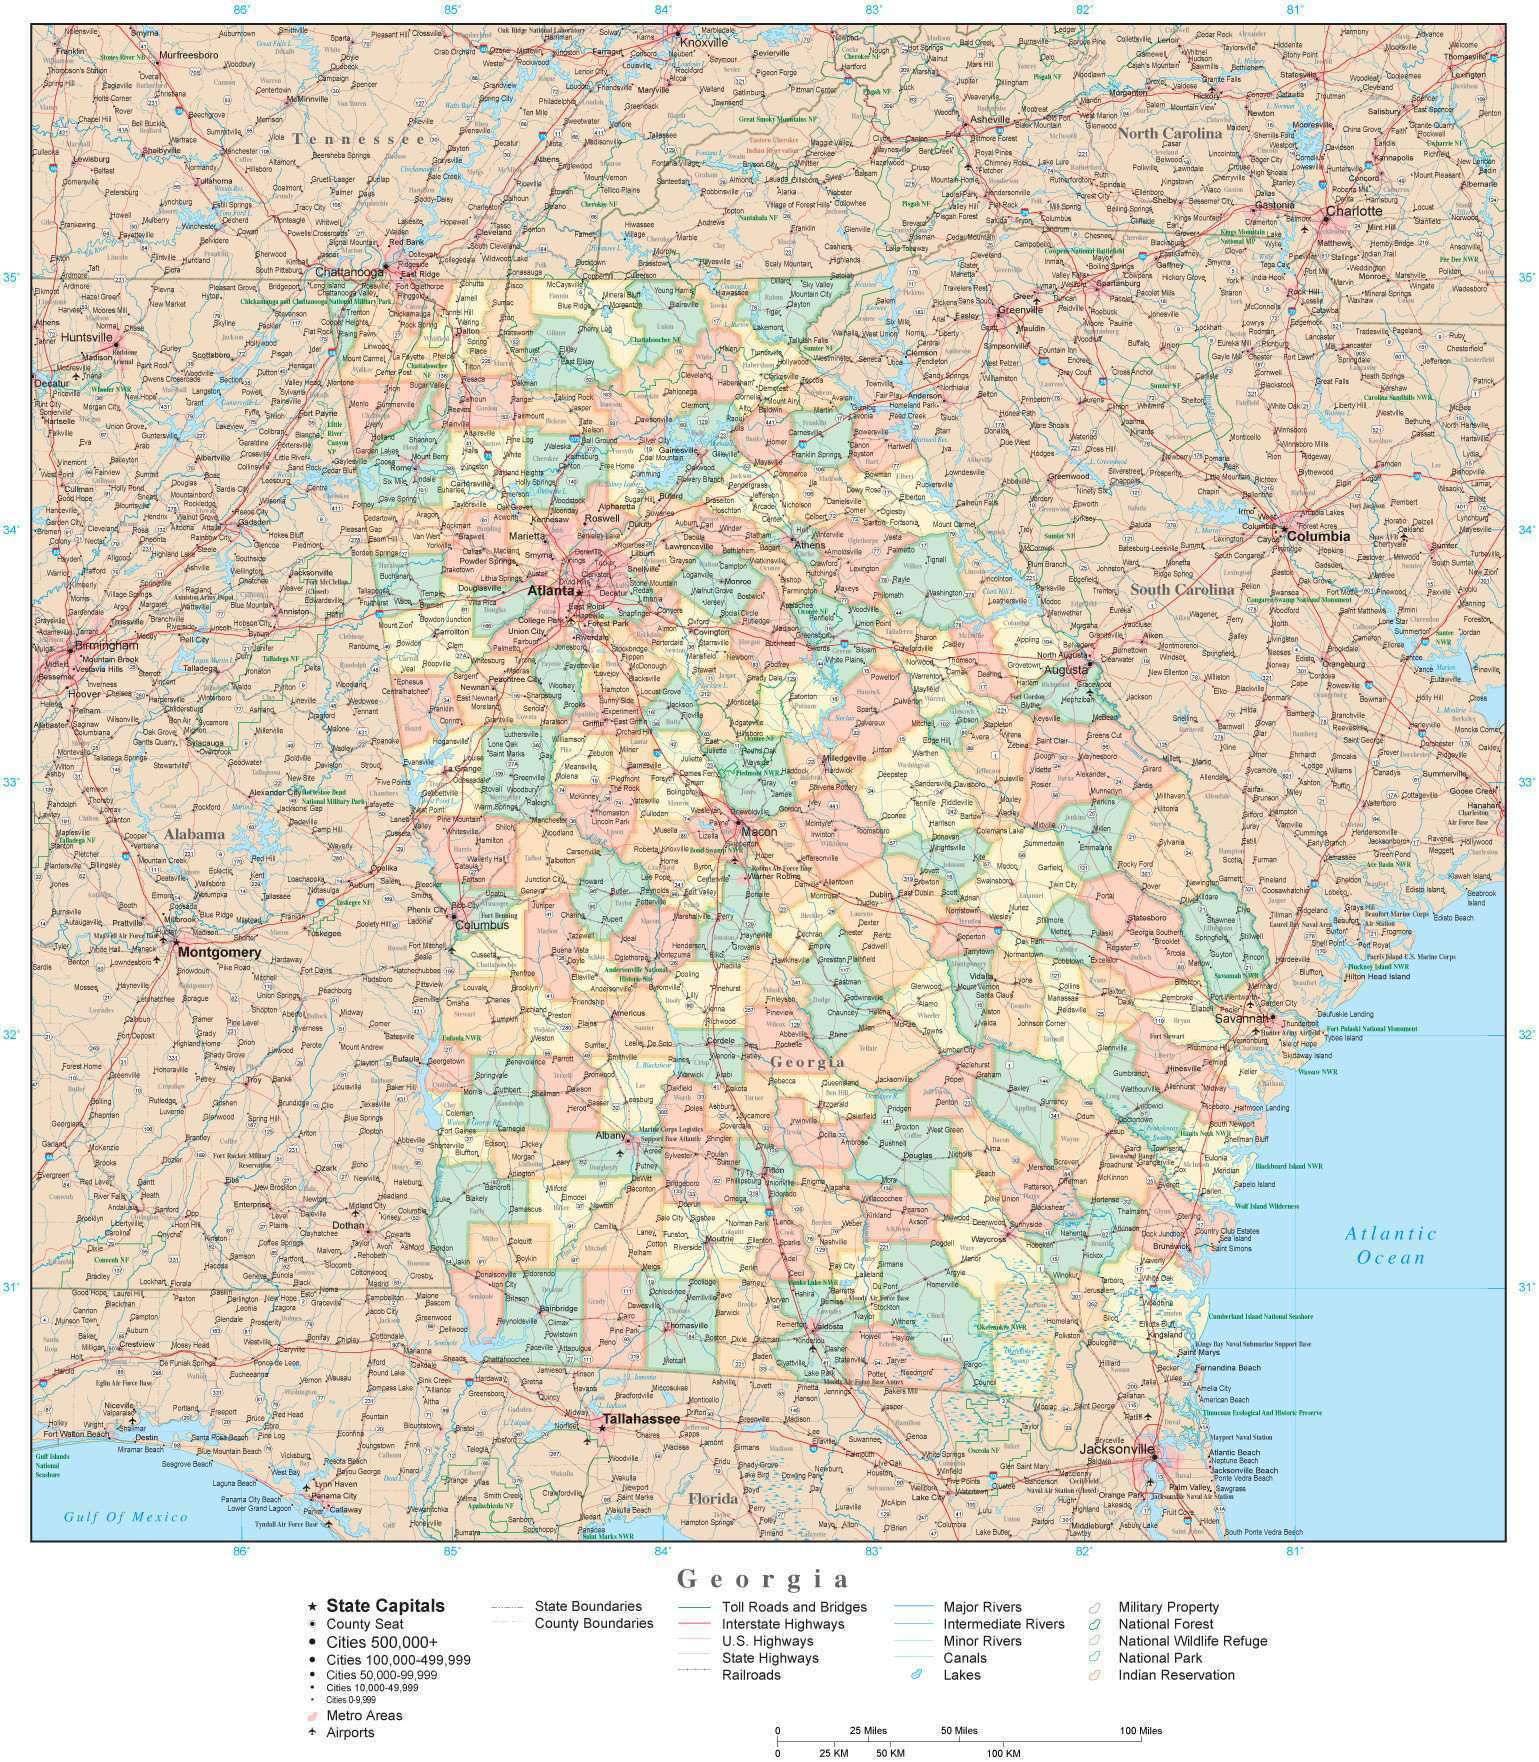 Georgia Map Of Counties And Cities.Detailed Georgia Digital Map With Counties Cities Highways Railroads Airports National Parks And More